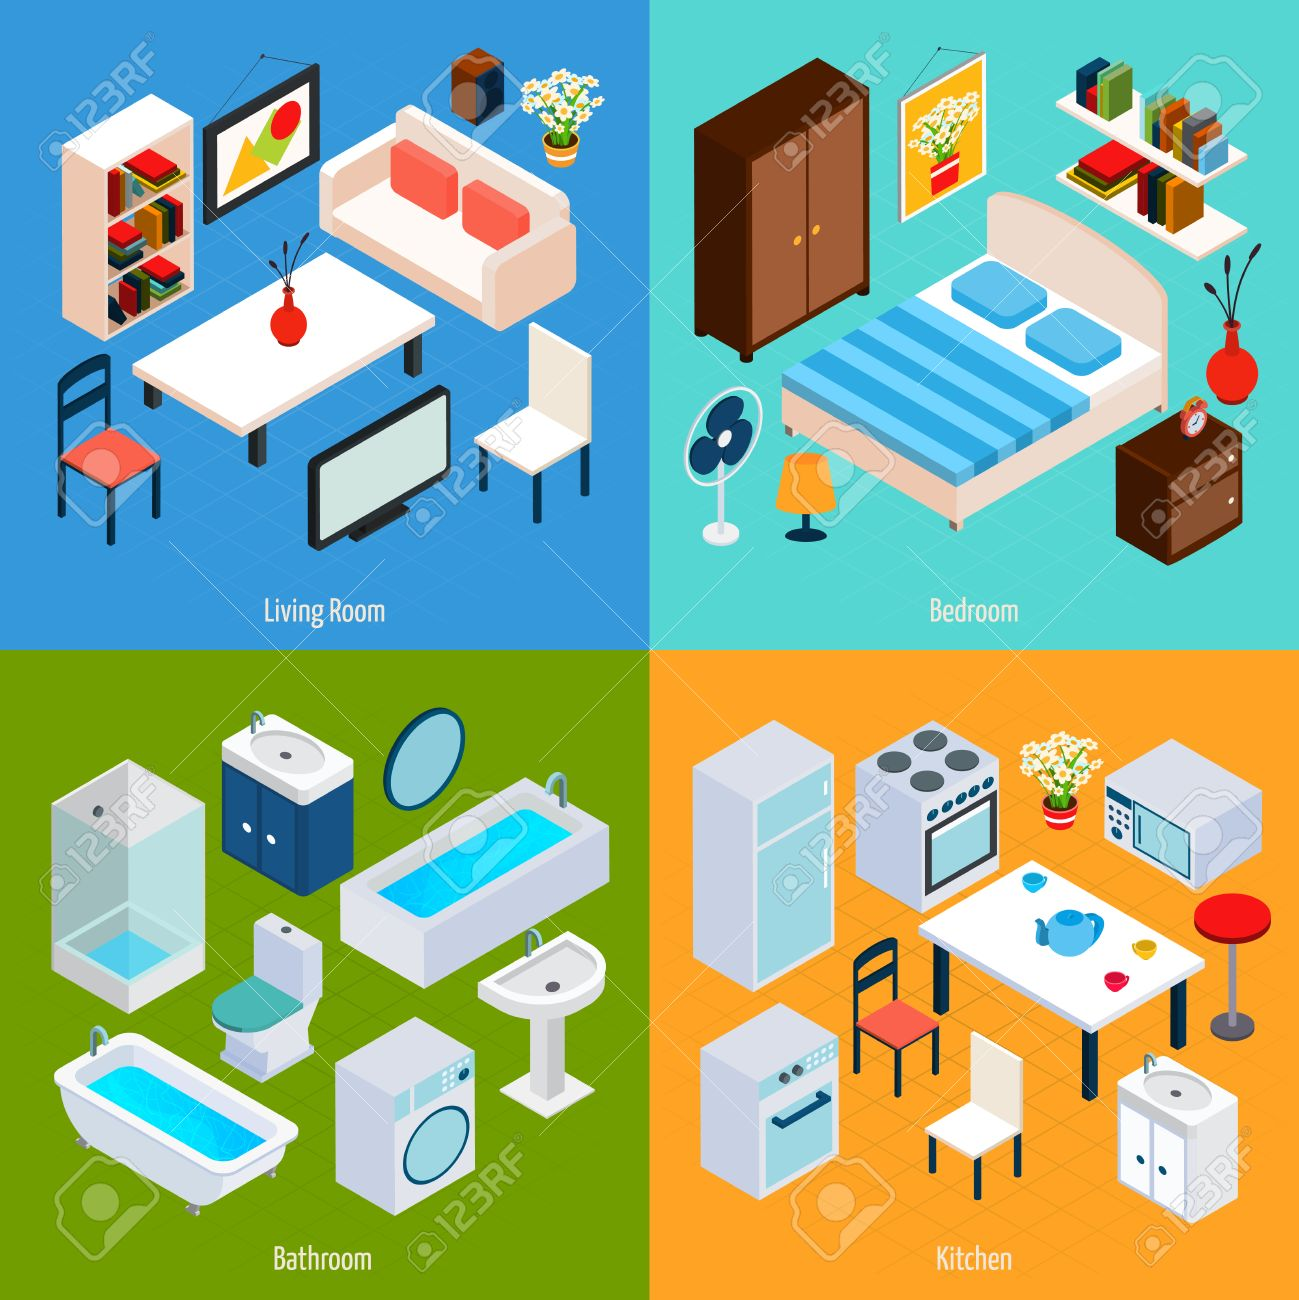 Isometric Interior Design Concept Set With Living Room Bedroom Bathroom And Kitchen 3d Icons Isolated Vector